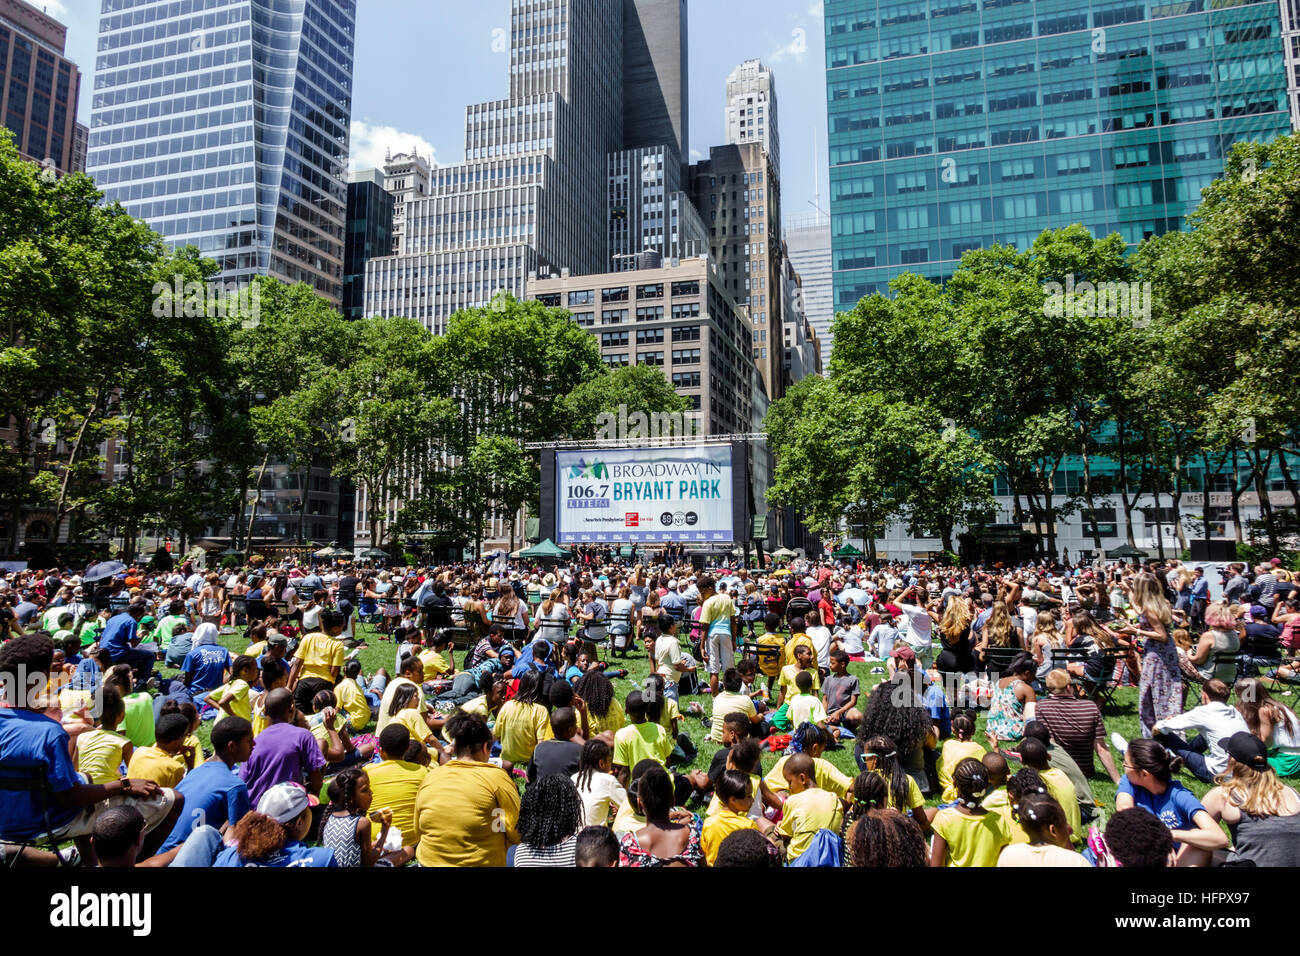 Manhattan New York City Nyc Ny Midtown Bryant Park Public Park Broadway In Bryant Park Free Concert Performance Au Nce Lunch Crowd Sitting Stage